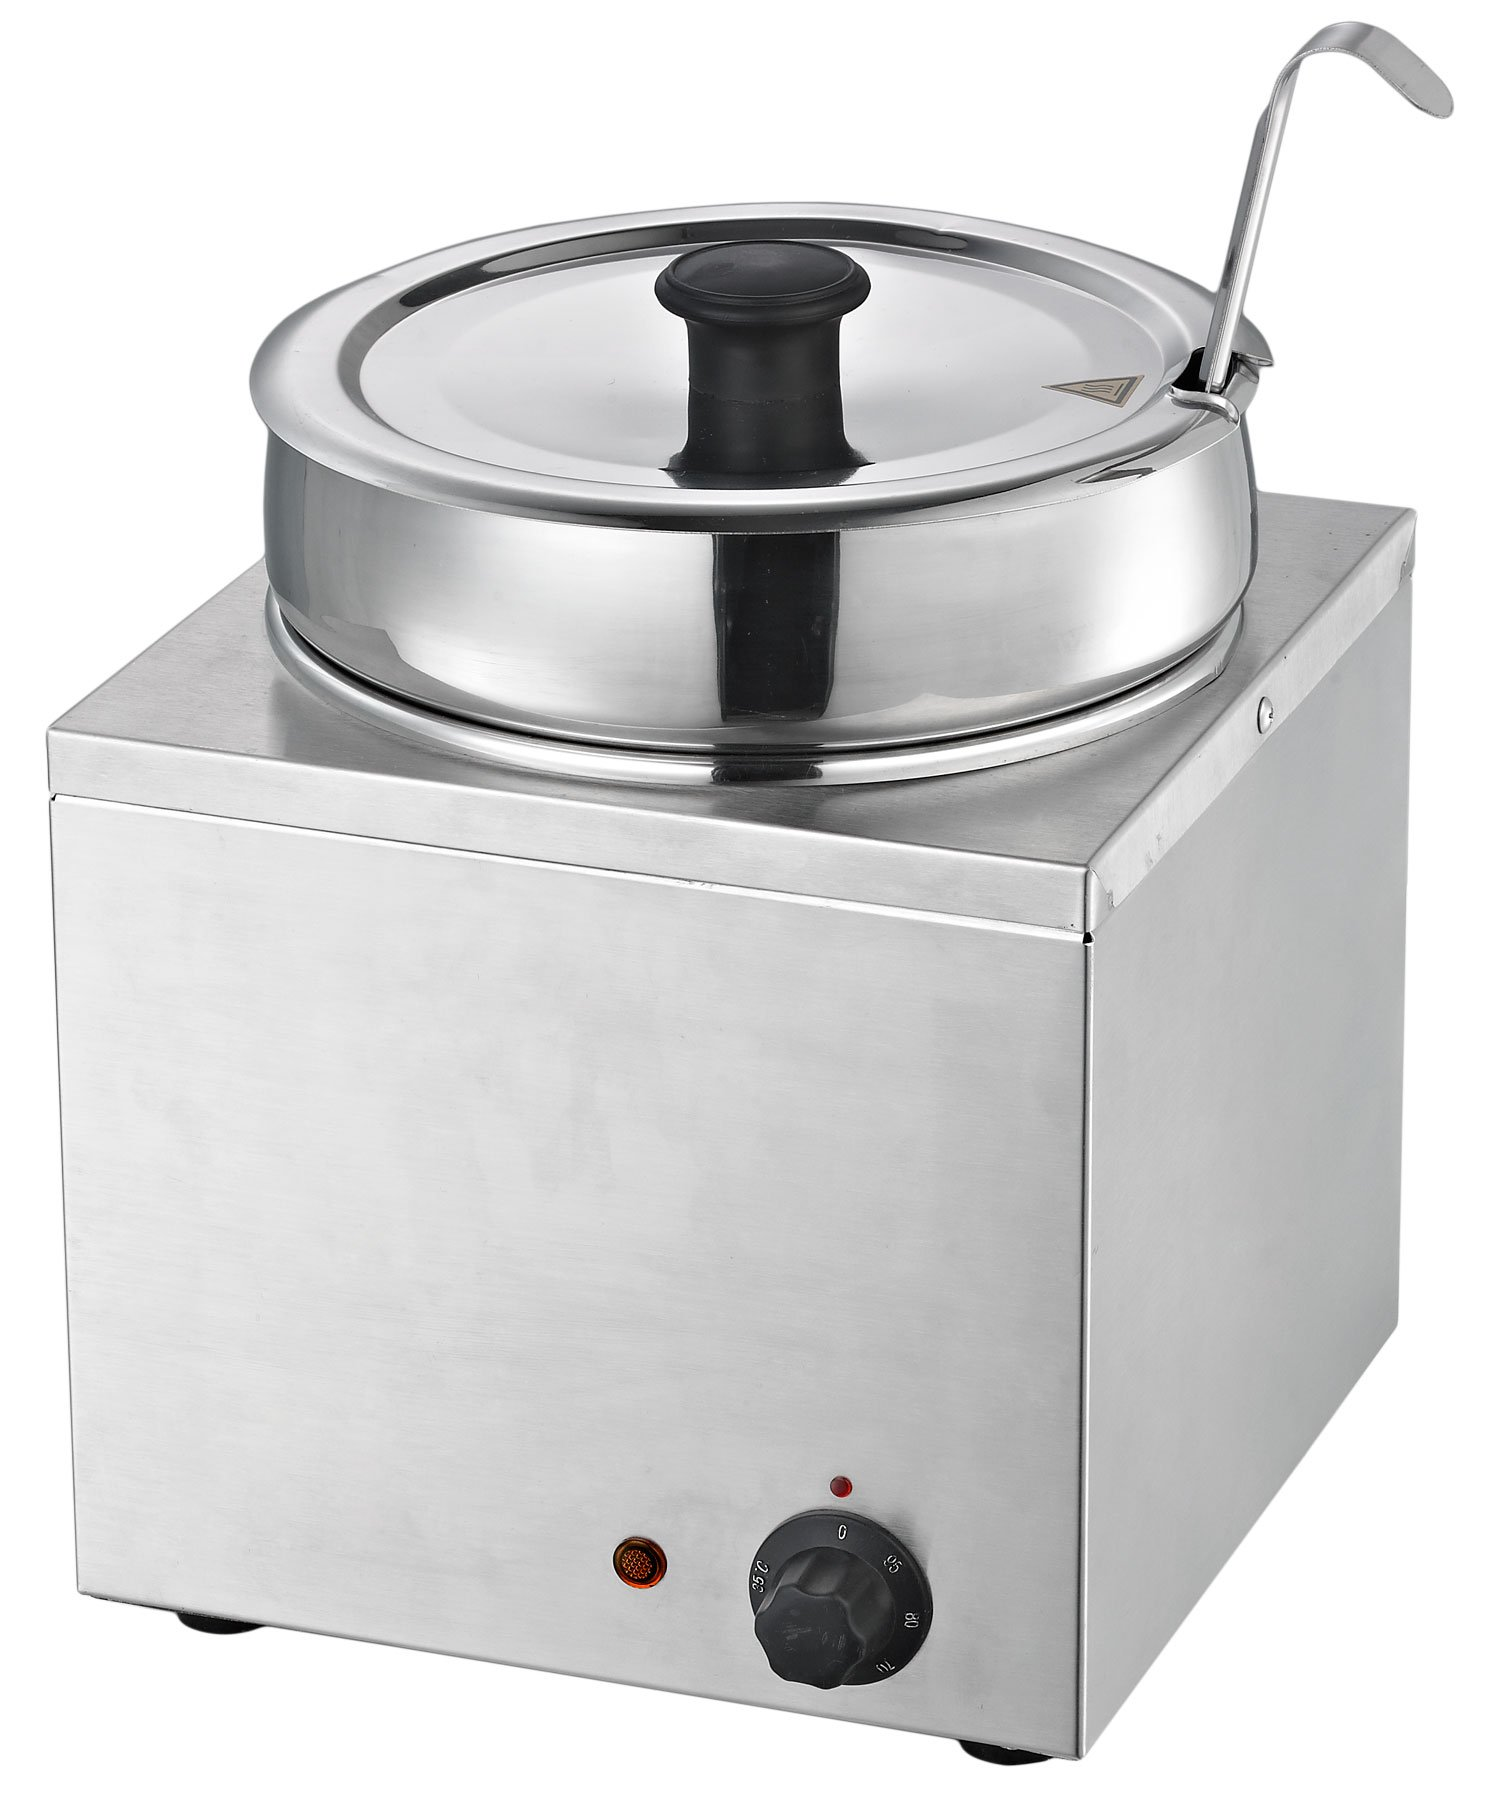 Chef's Supreme - 7 qt. Round Stainless Food Warmer w/ Insert and Lid